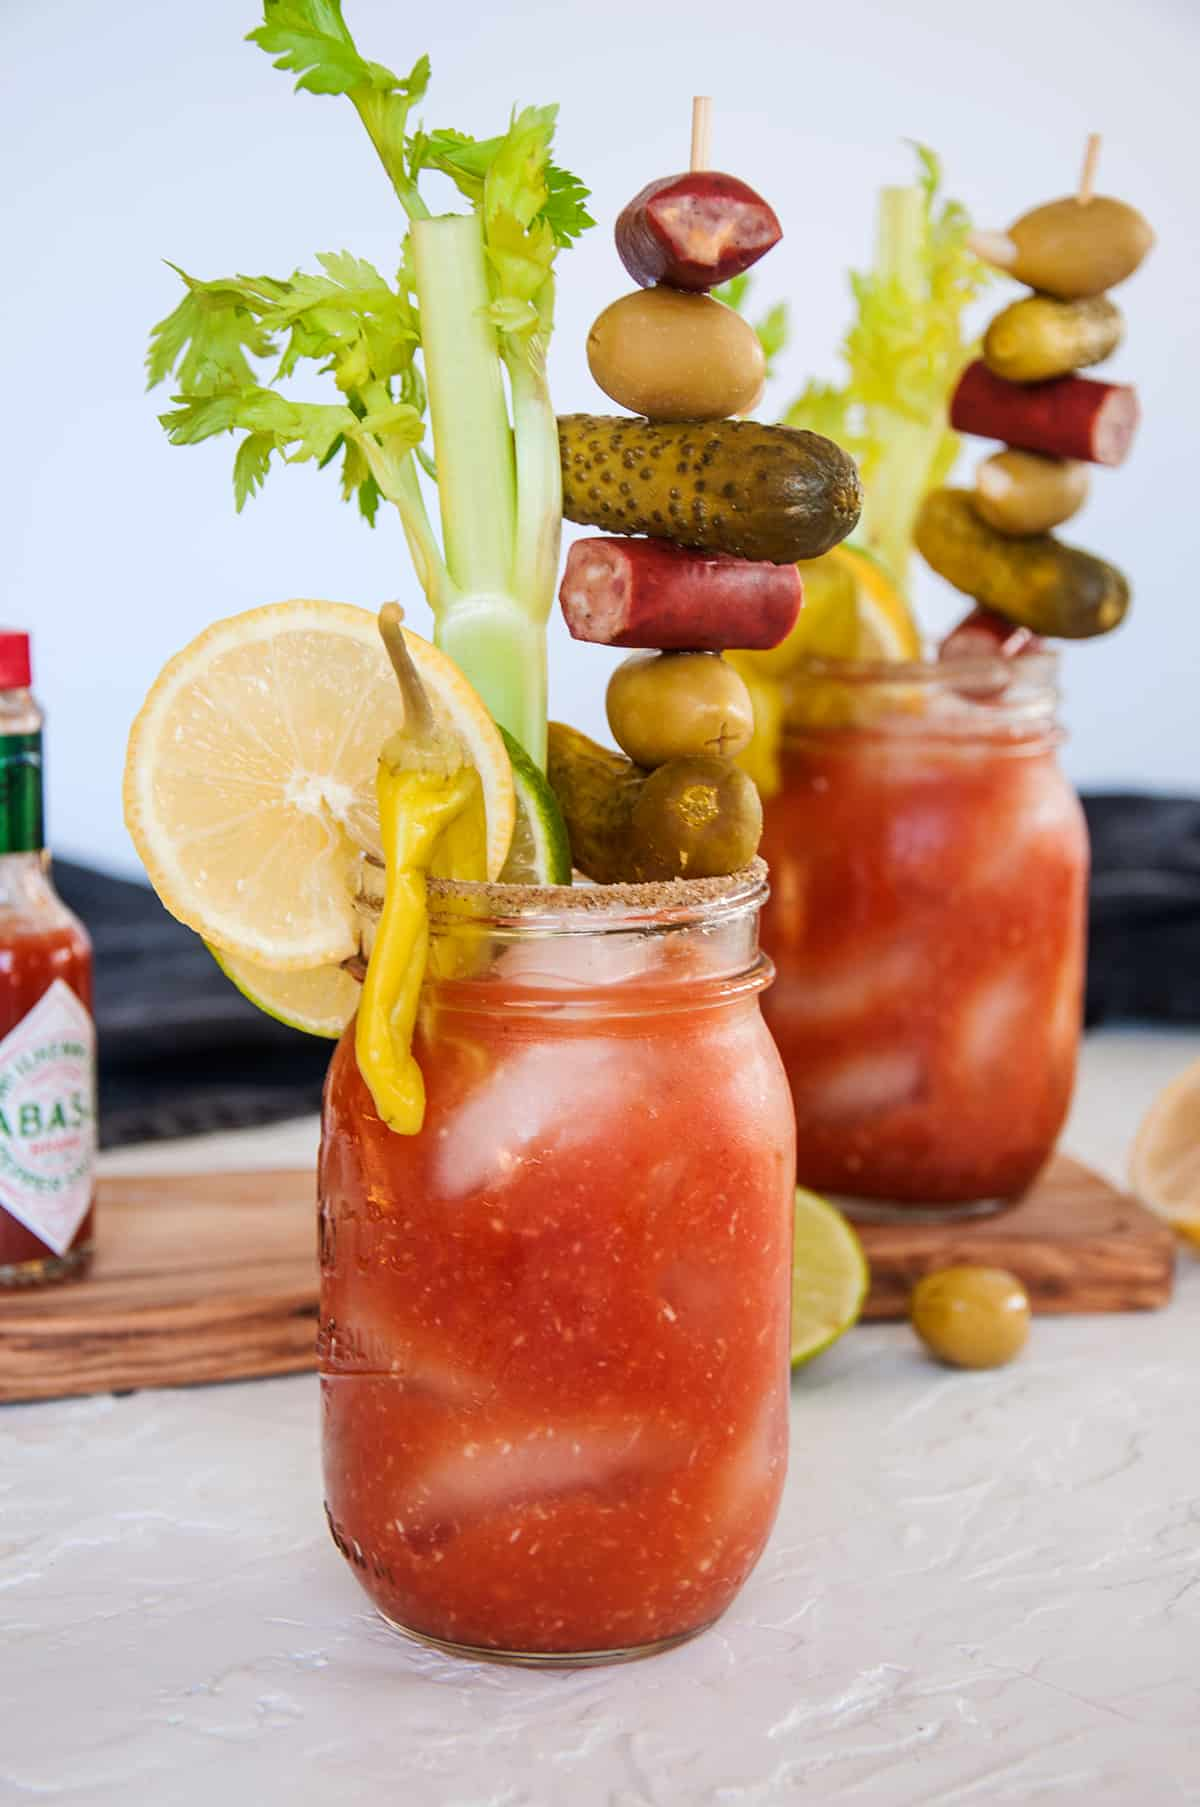 A good look at two stacked bloody mary drinks.